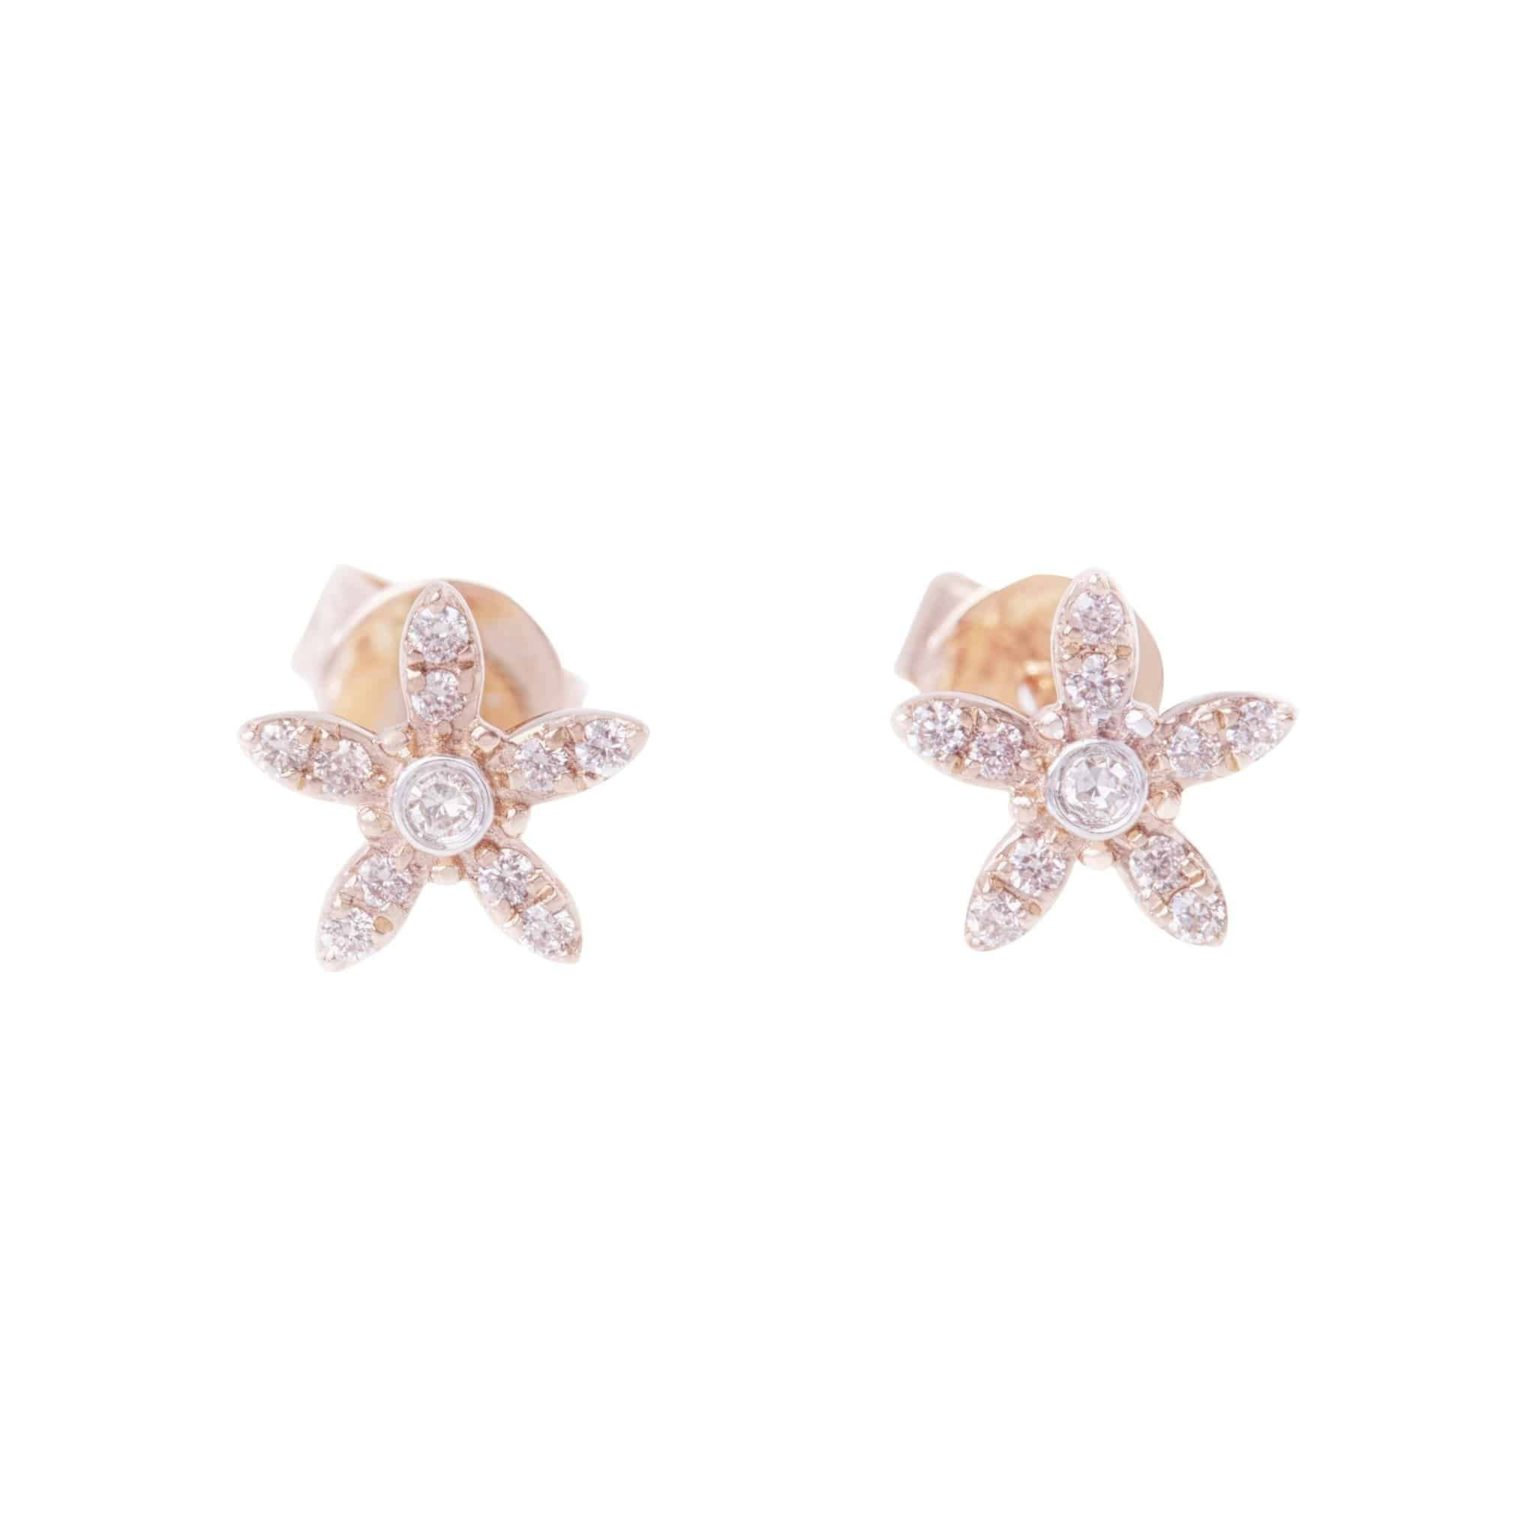 Eminence Pinks Diamond Star Earrings p3